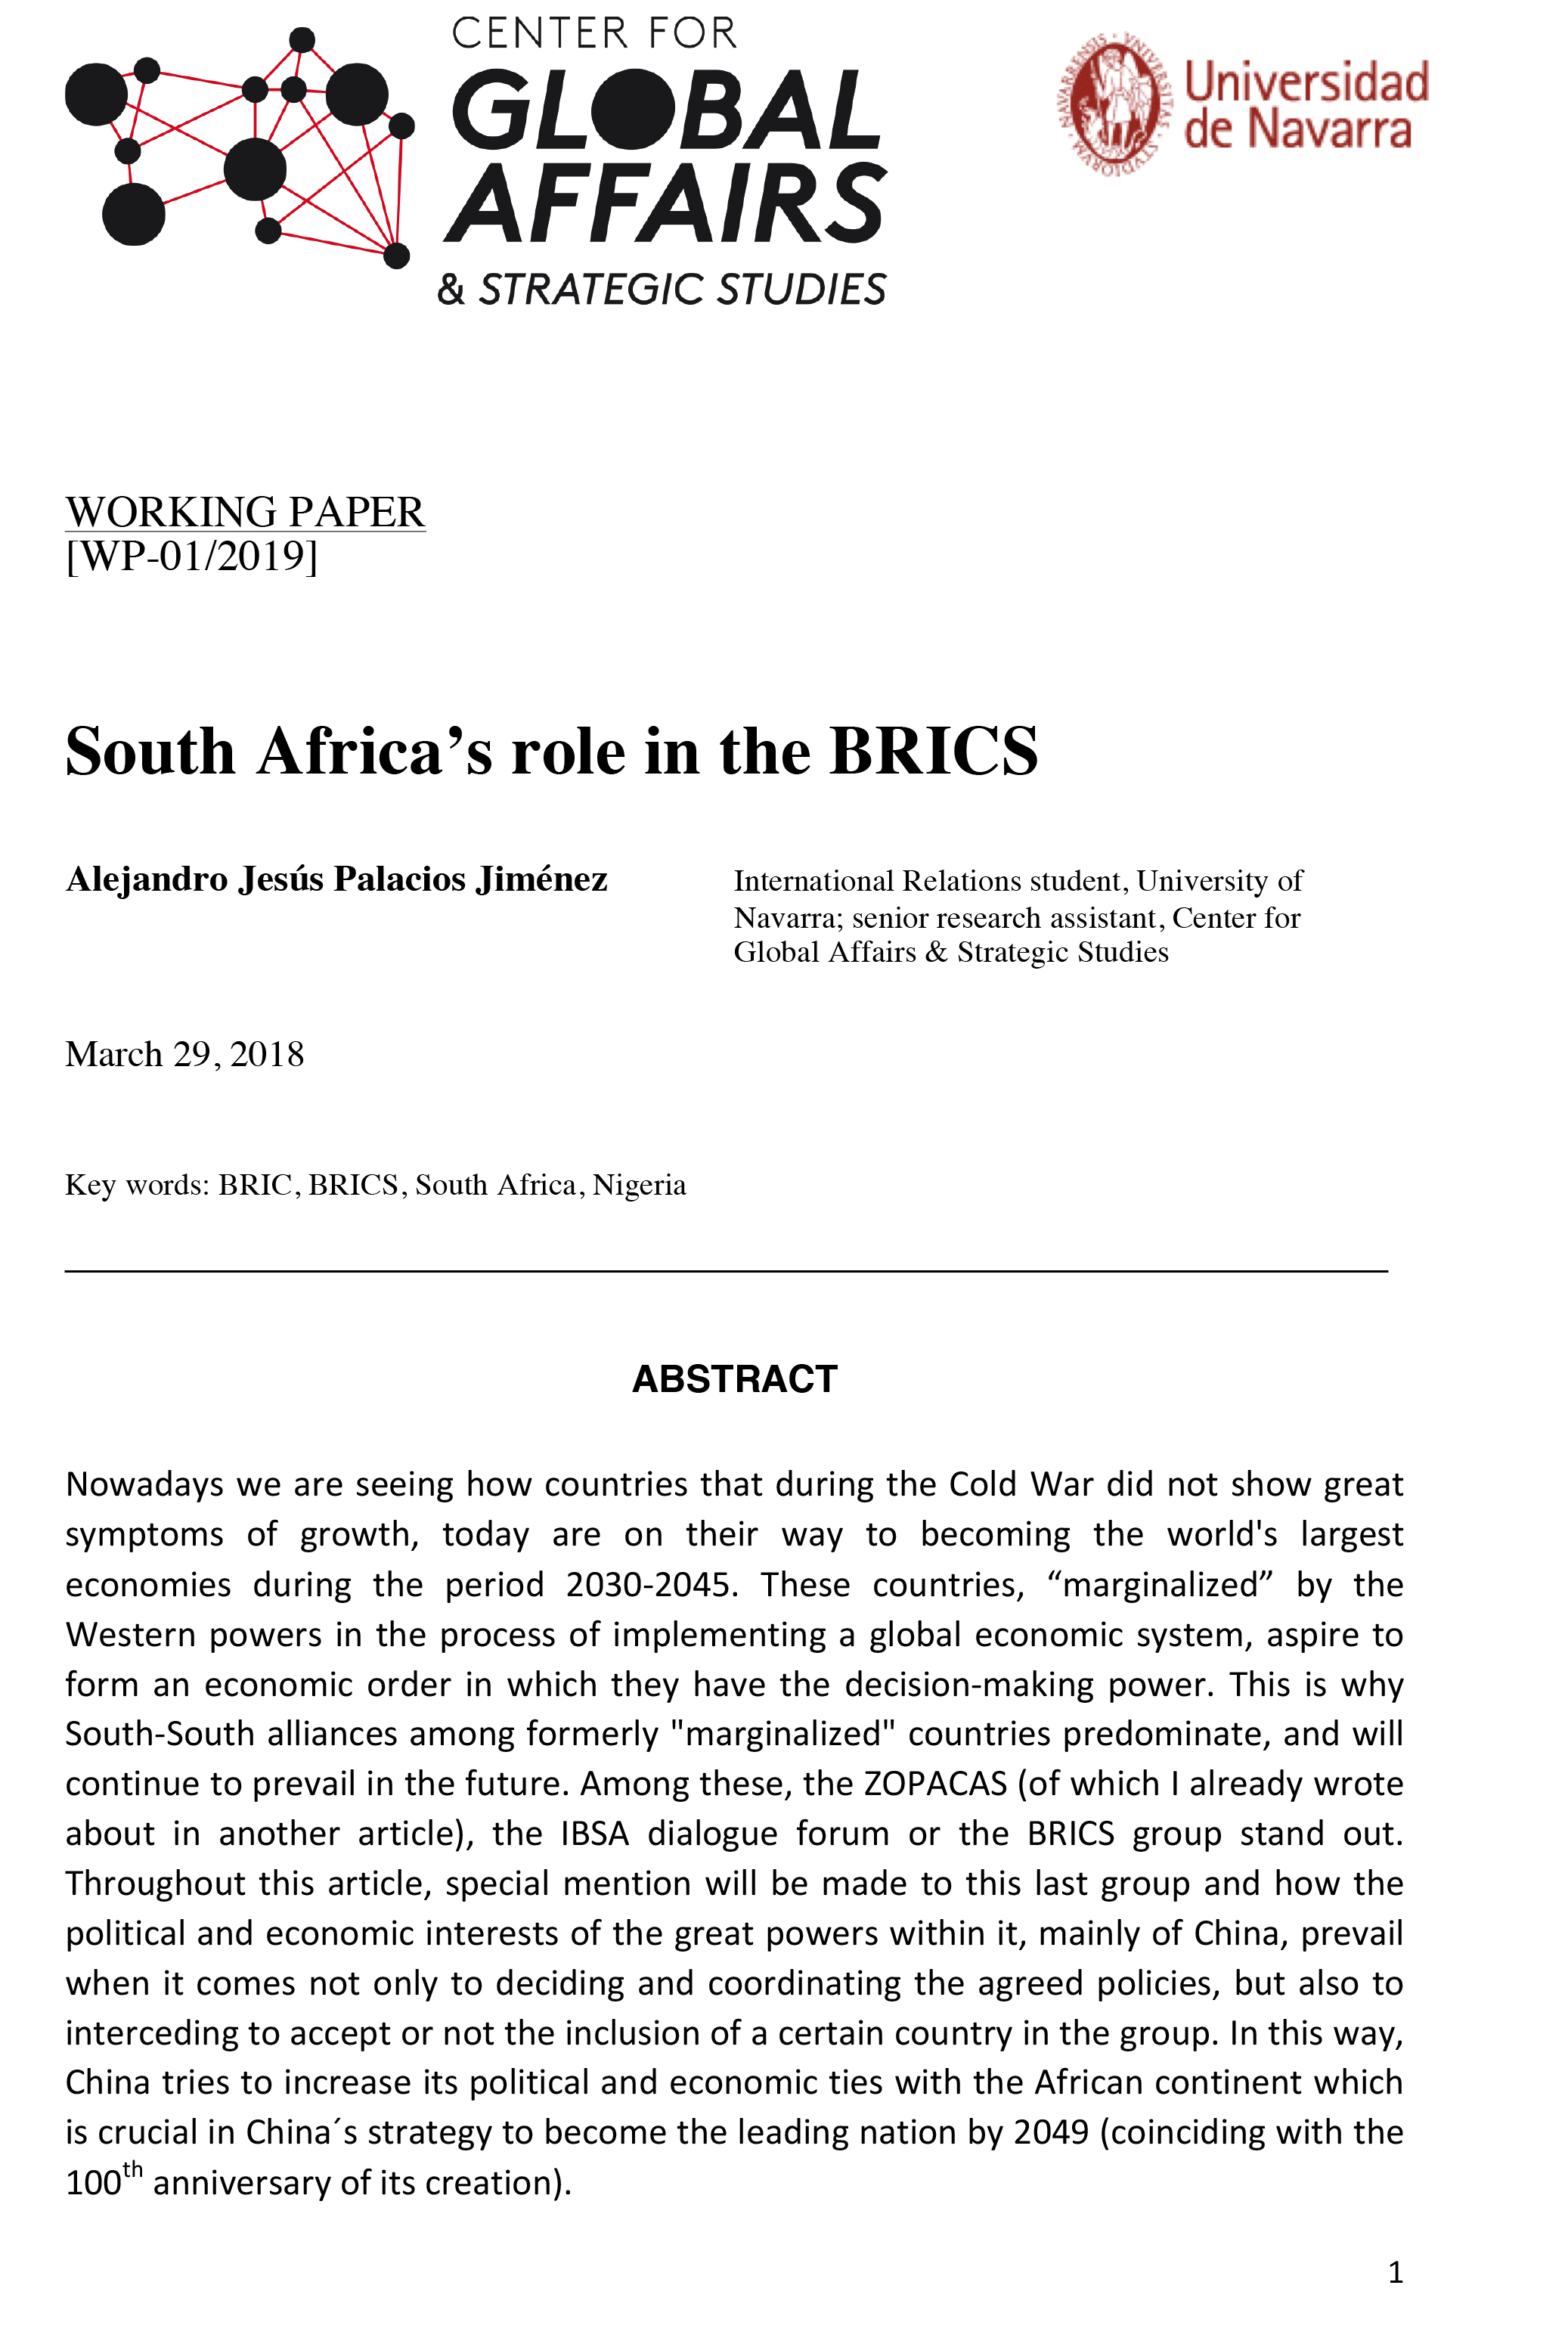 South Africa's role in the BRICS